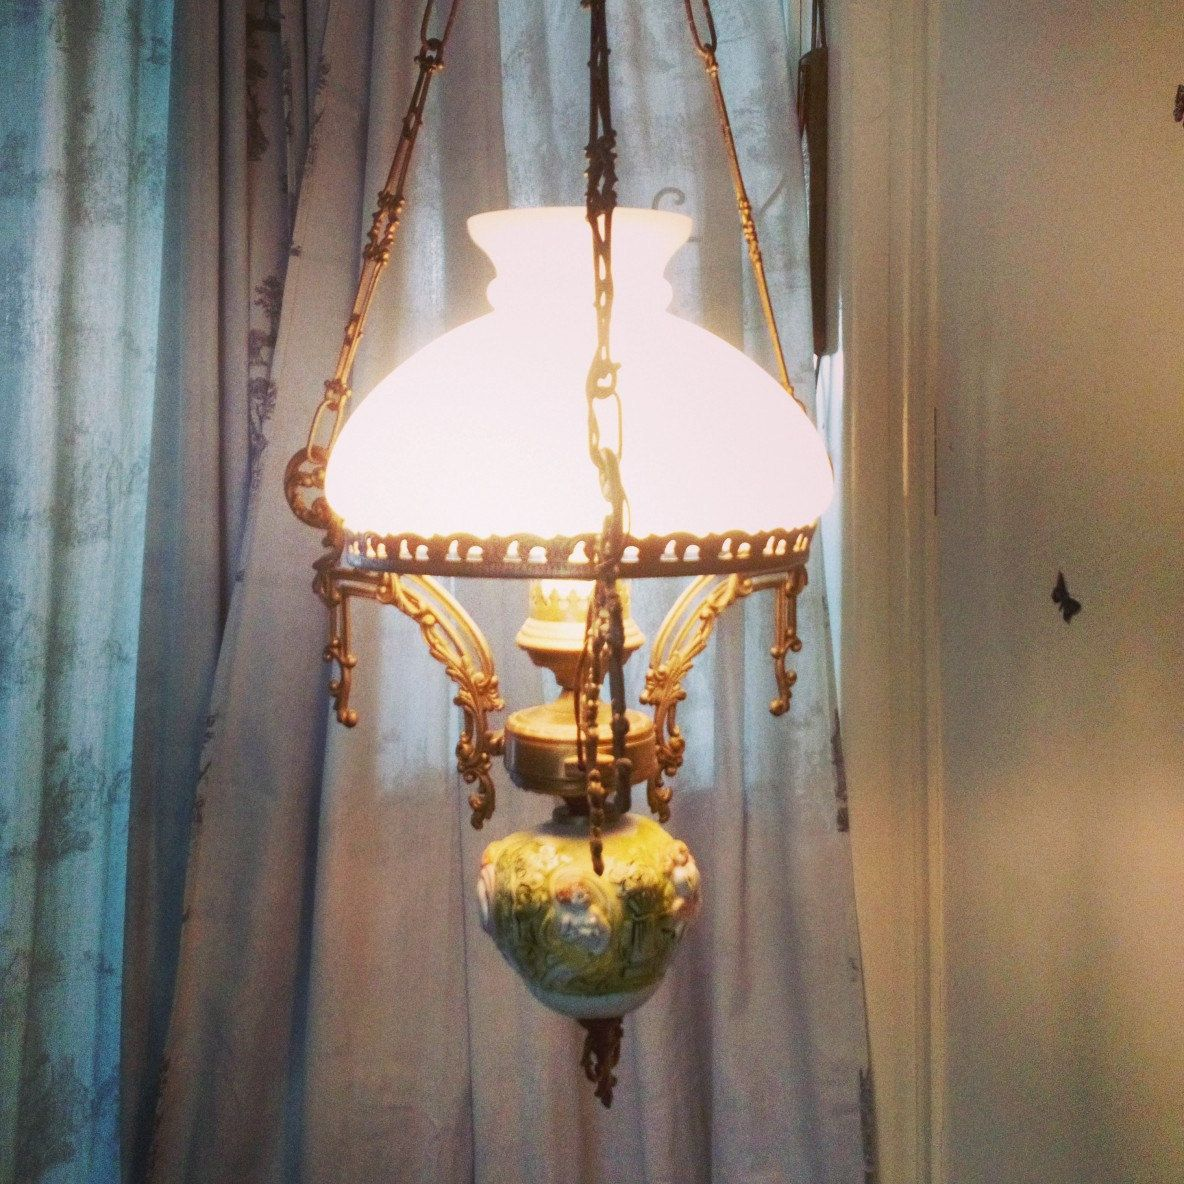 Frenchpasttimes shared a new photo on farmhouse lamps